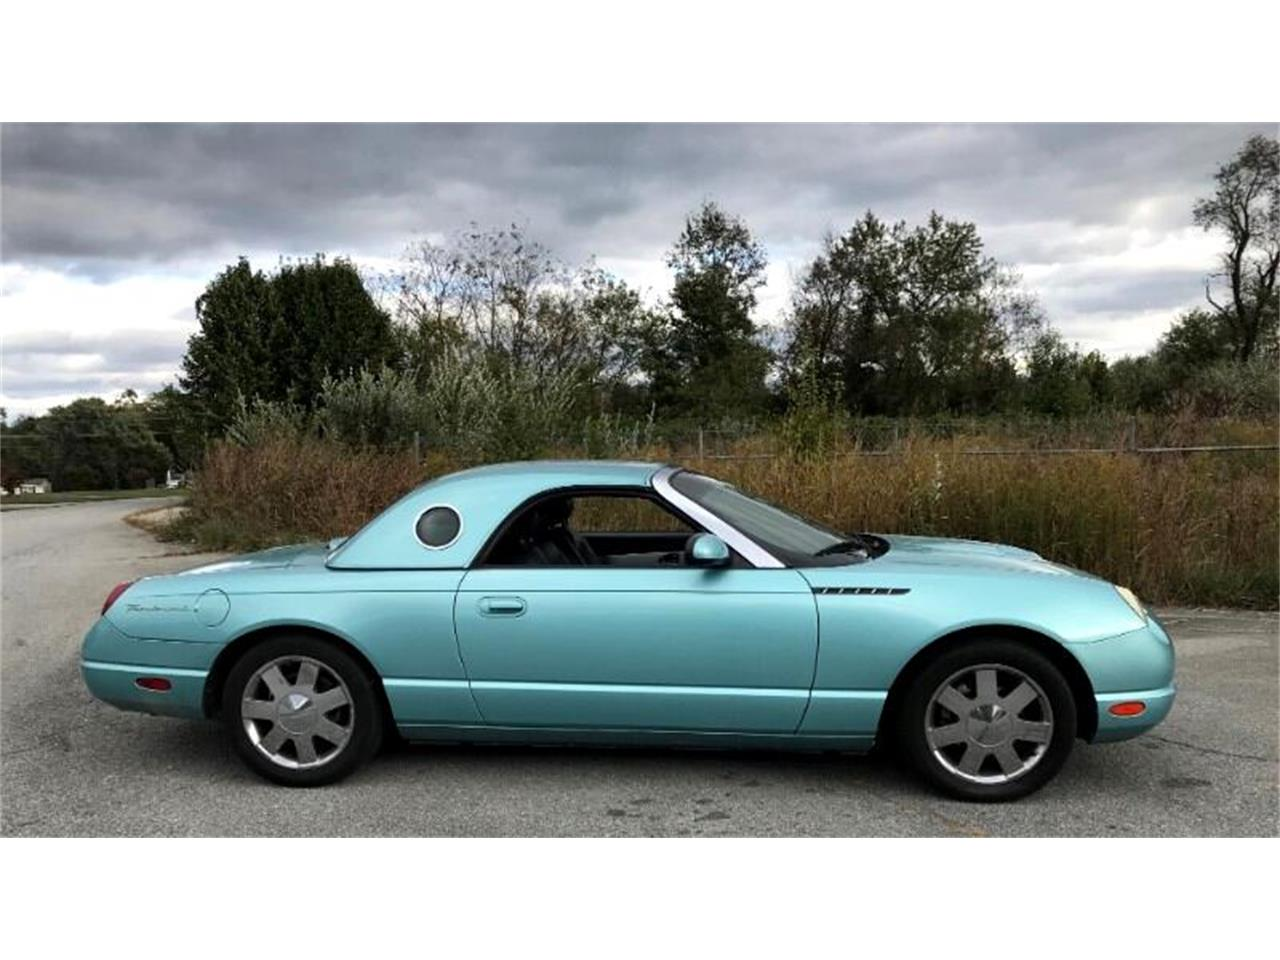 2002 Ford Thunderbird (CC-1299142) for sale in Harpers Ferry, West Virginia